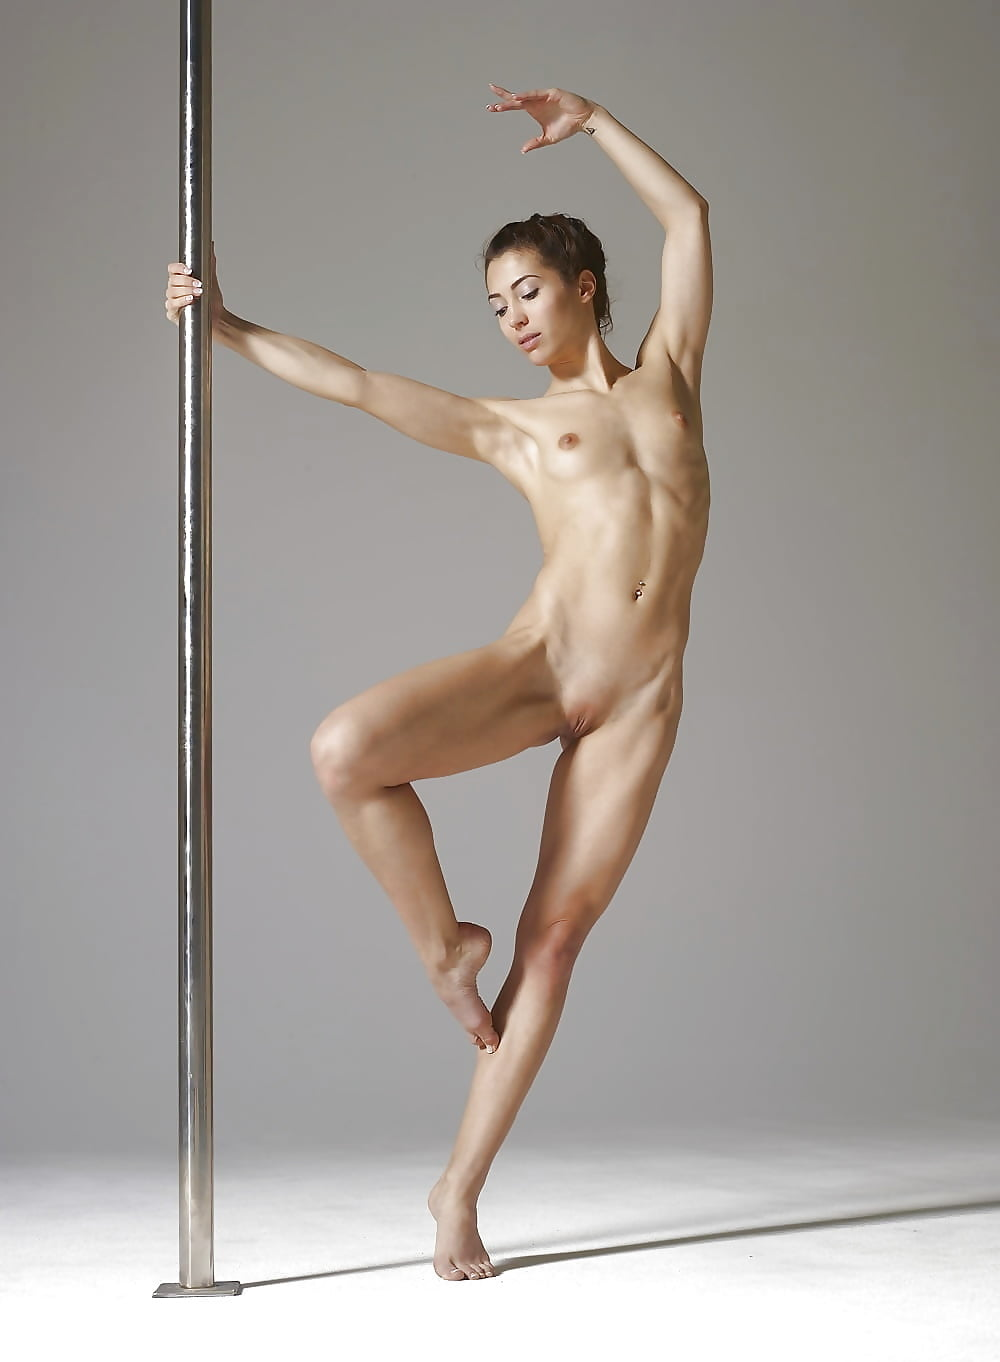 Naked Strippers Pole Dancing